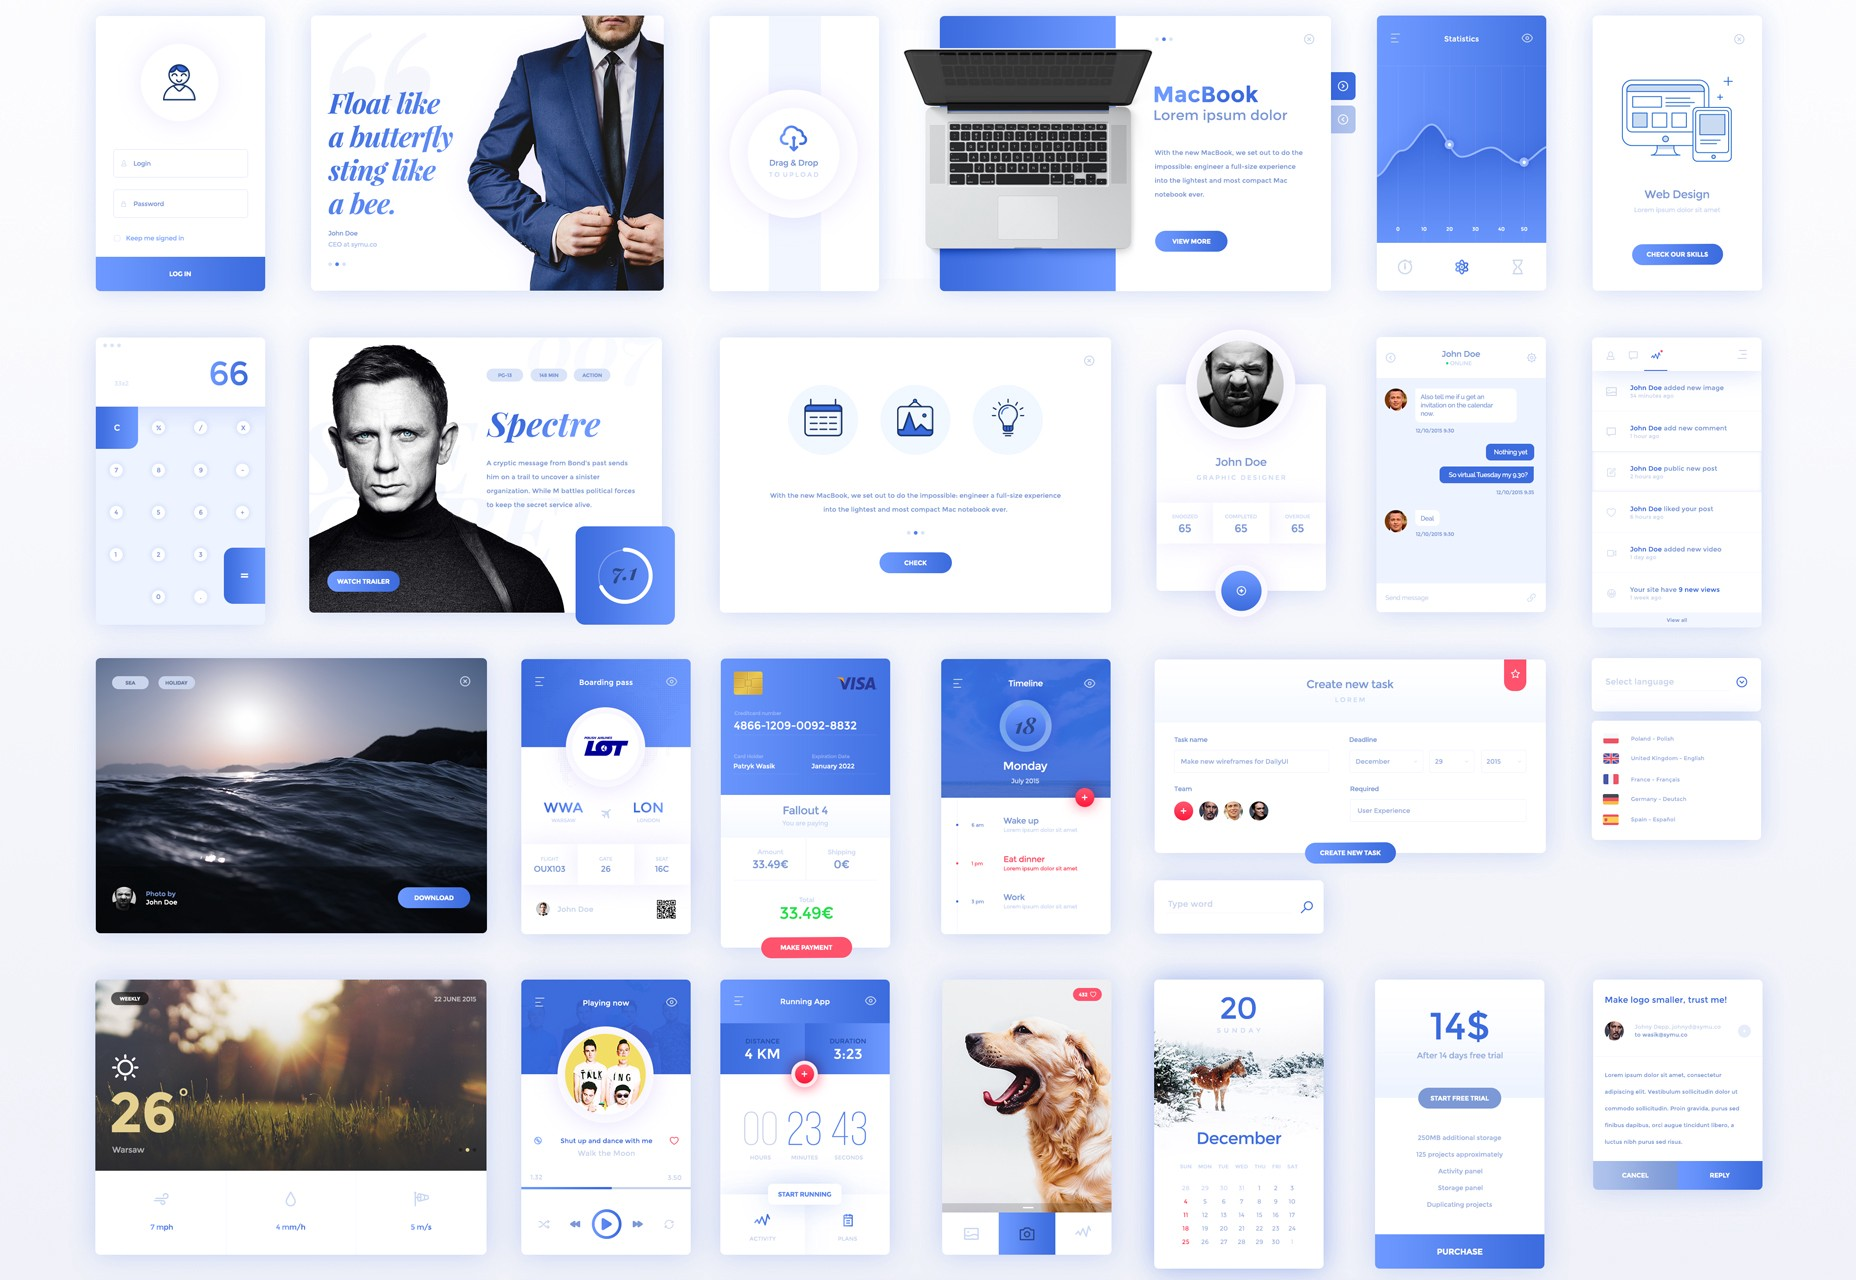 50+ fresh resources for designers, February 2016